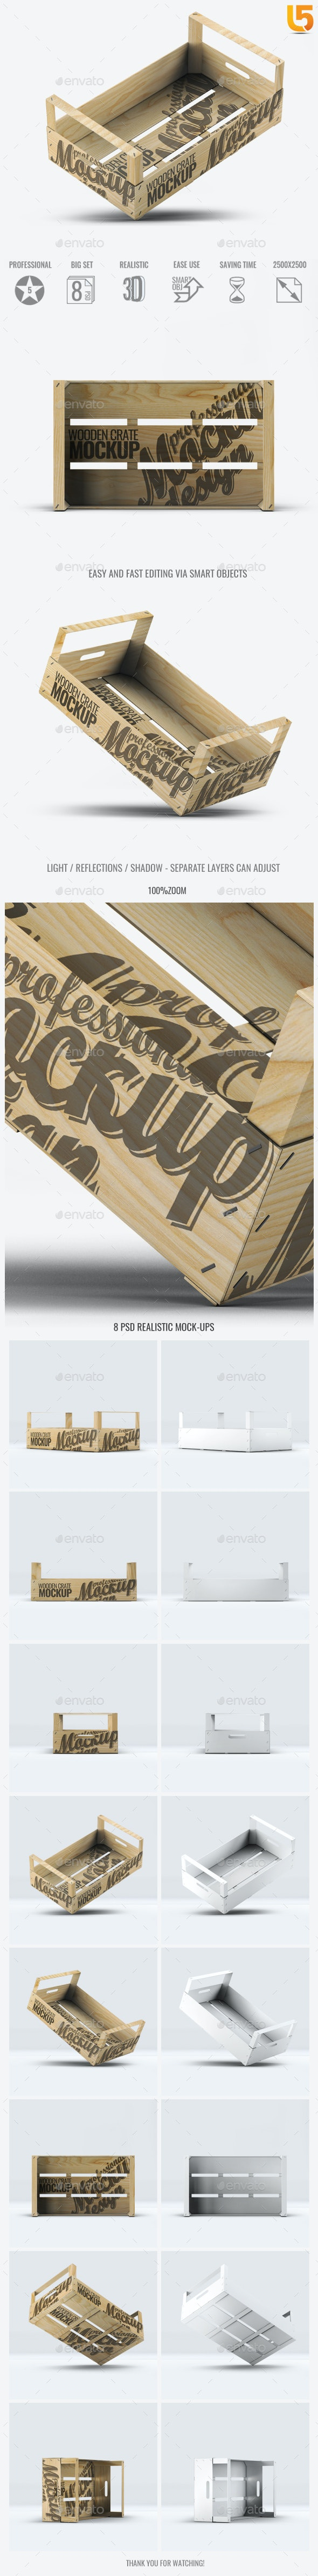 Wooden Fruit Crate Mock-Up - Food and Drink Packaging